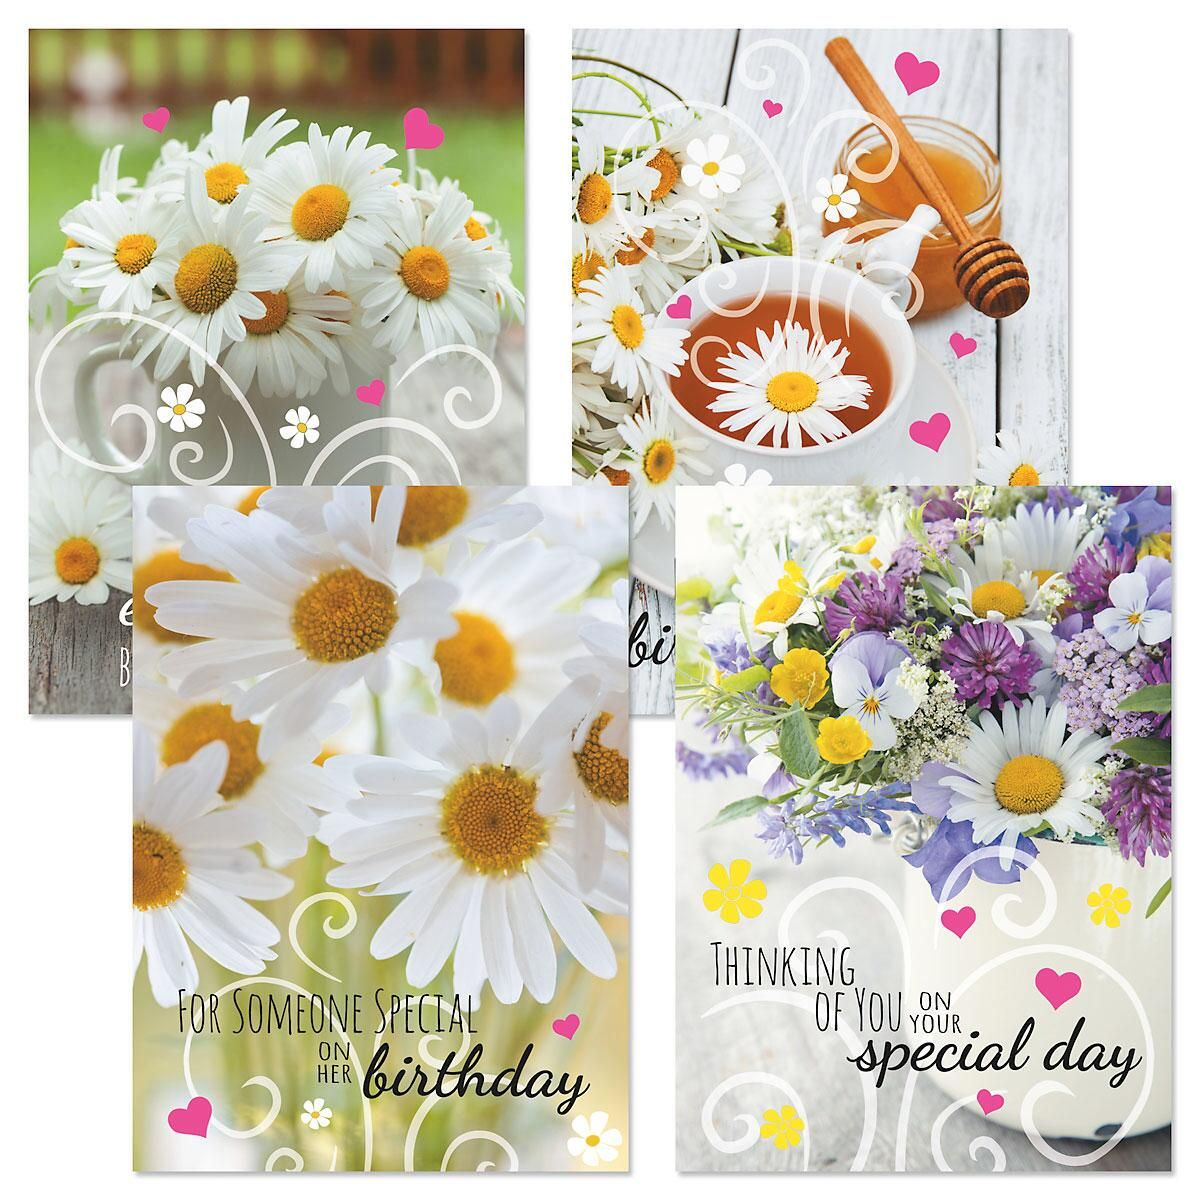 Sensational Daisy Birthday Cards And Seals Current Catalog Funny Birthday Cards Online Unhofree Goldxyz